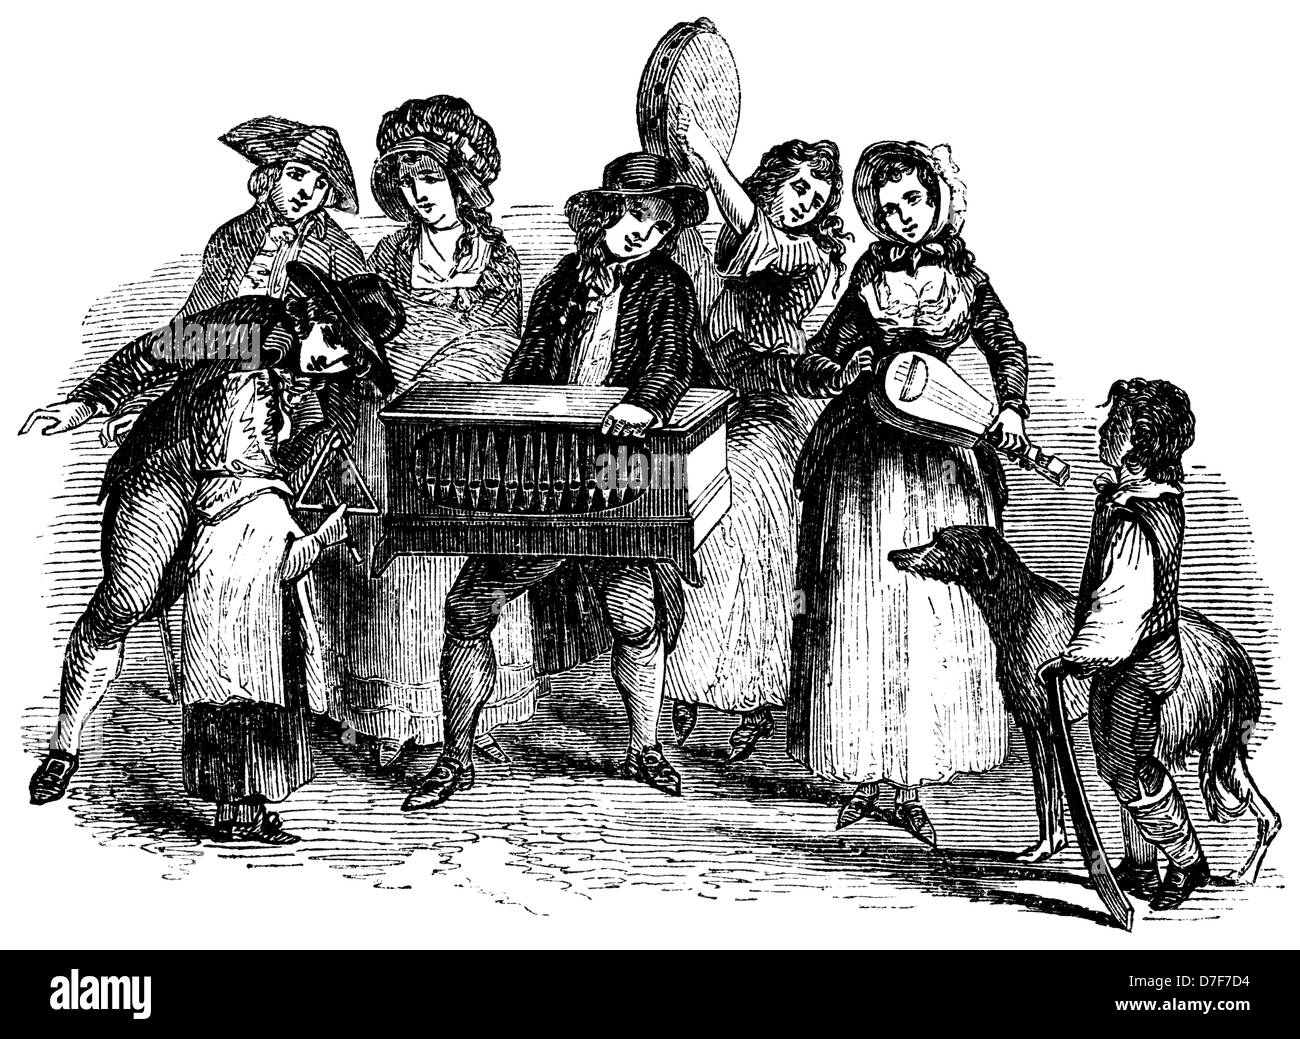 Street Musicians, from Dayes' Street Views, 1789 - Stock Image